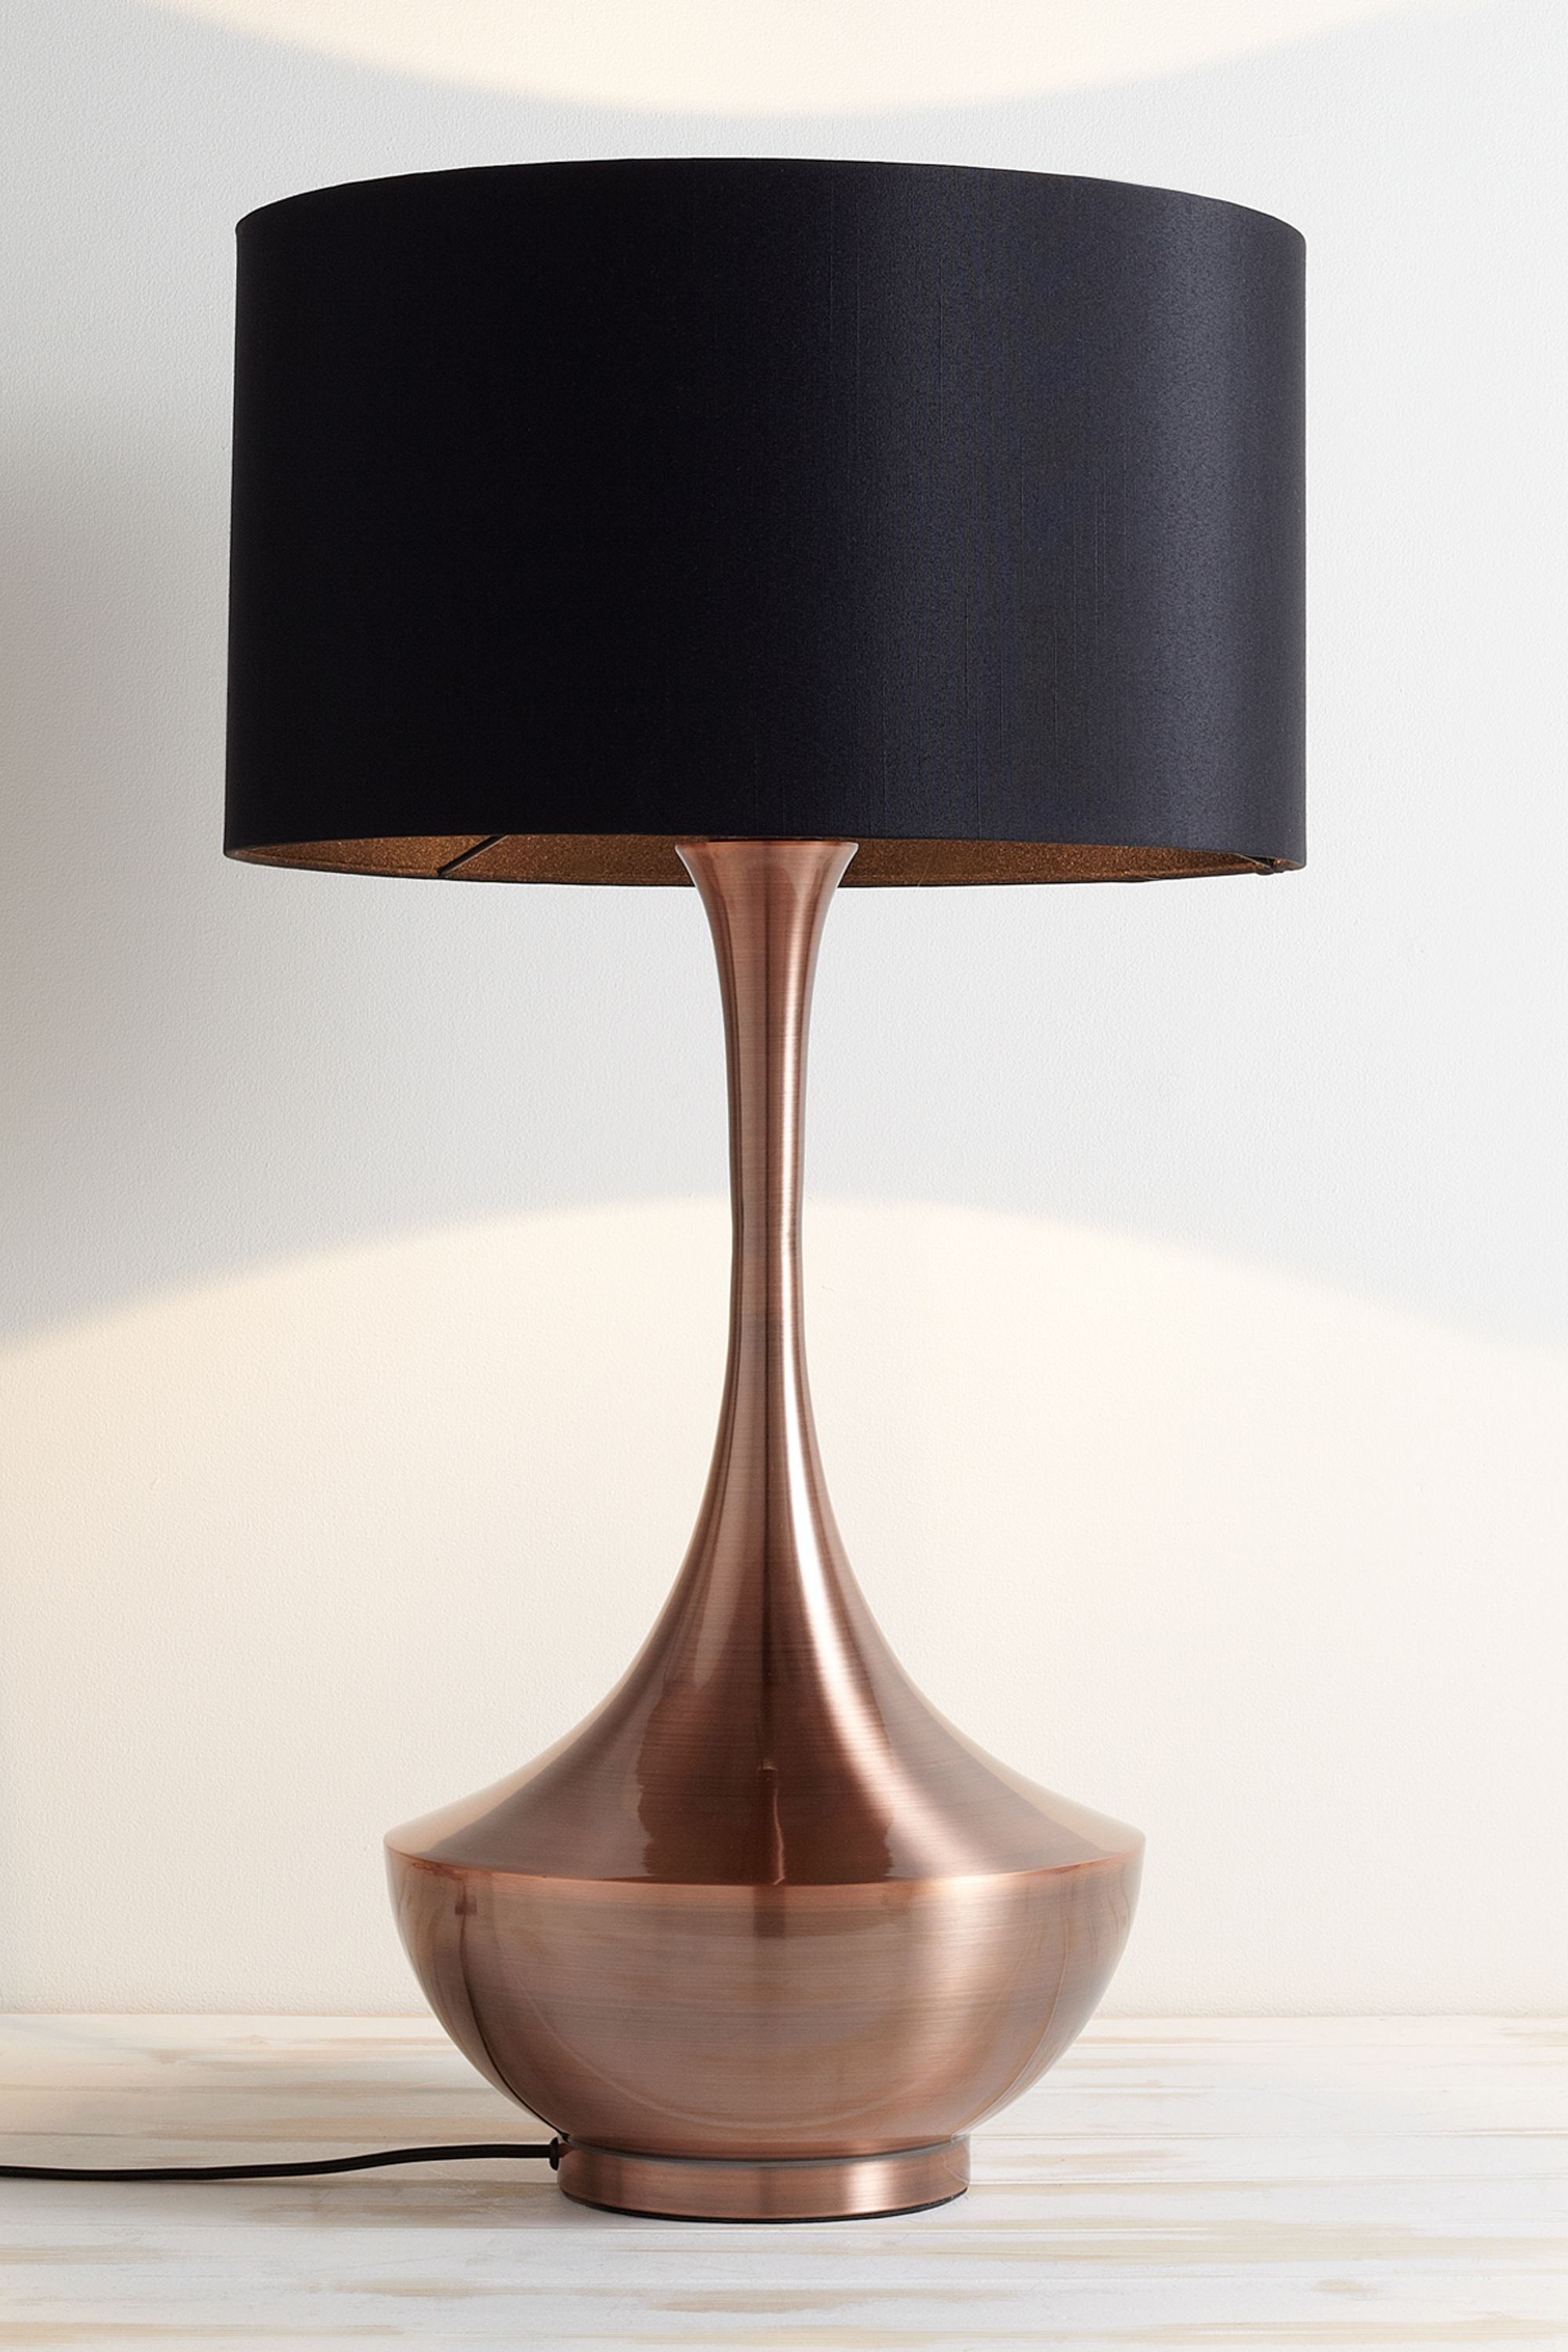 Brock Table Lamp Bhs Copper Statement Lamp With A Metallic Shine